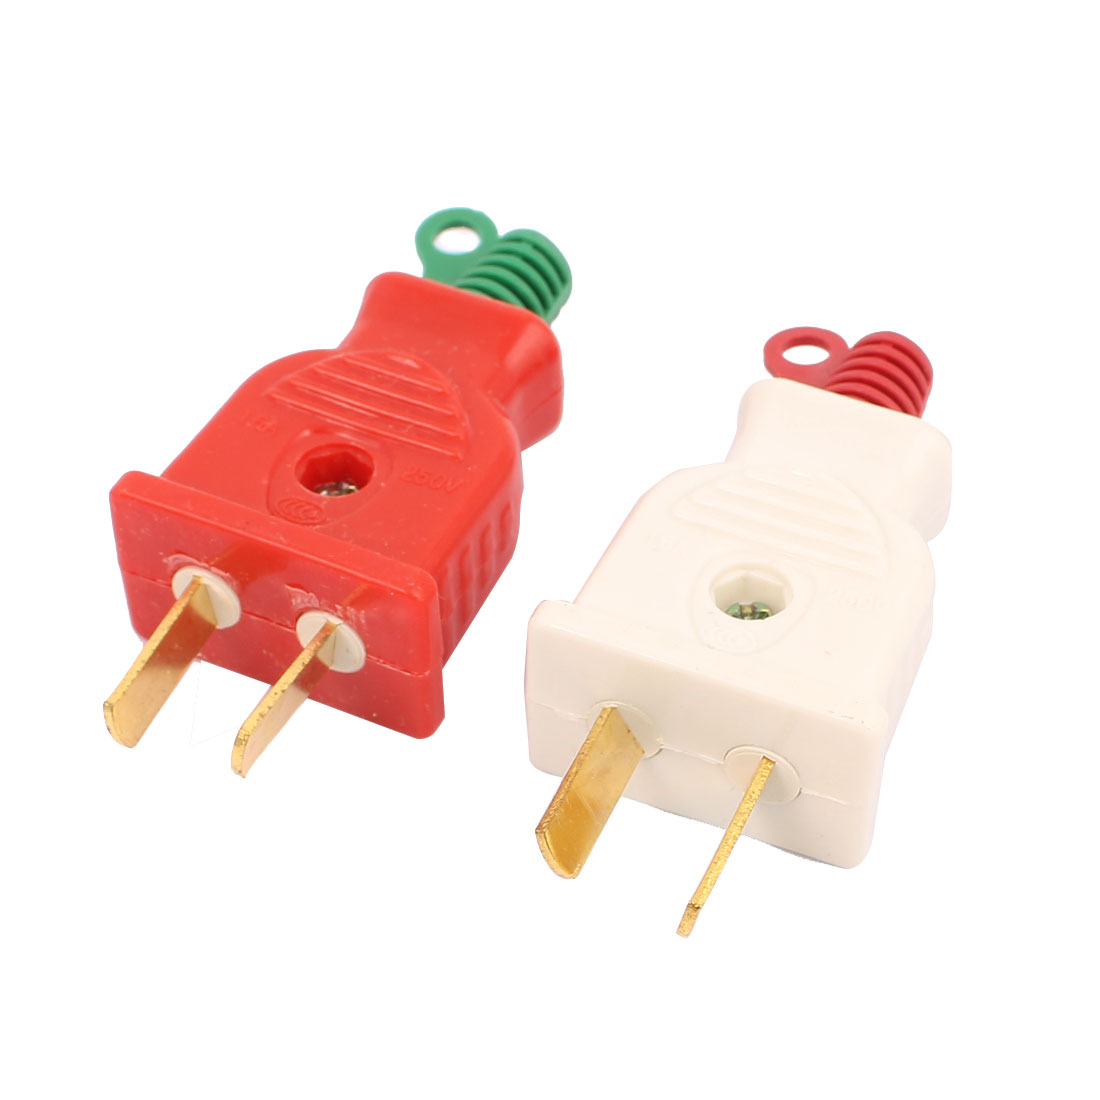 2 Pcs 250VAC 16A Red White Case 2 Flat Pin AU Power Cable Plug Power Adapter